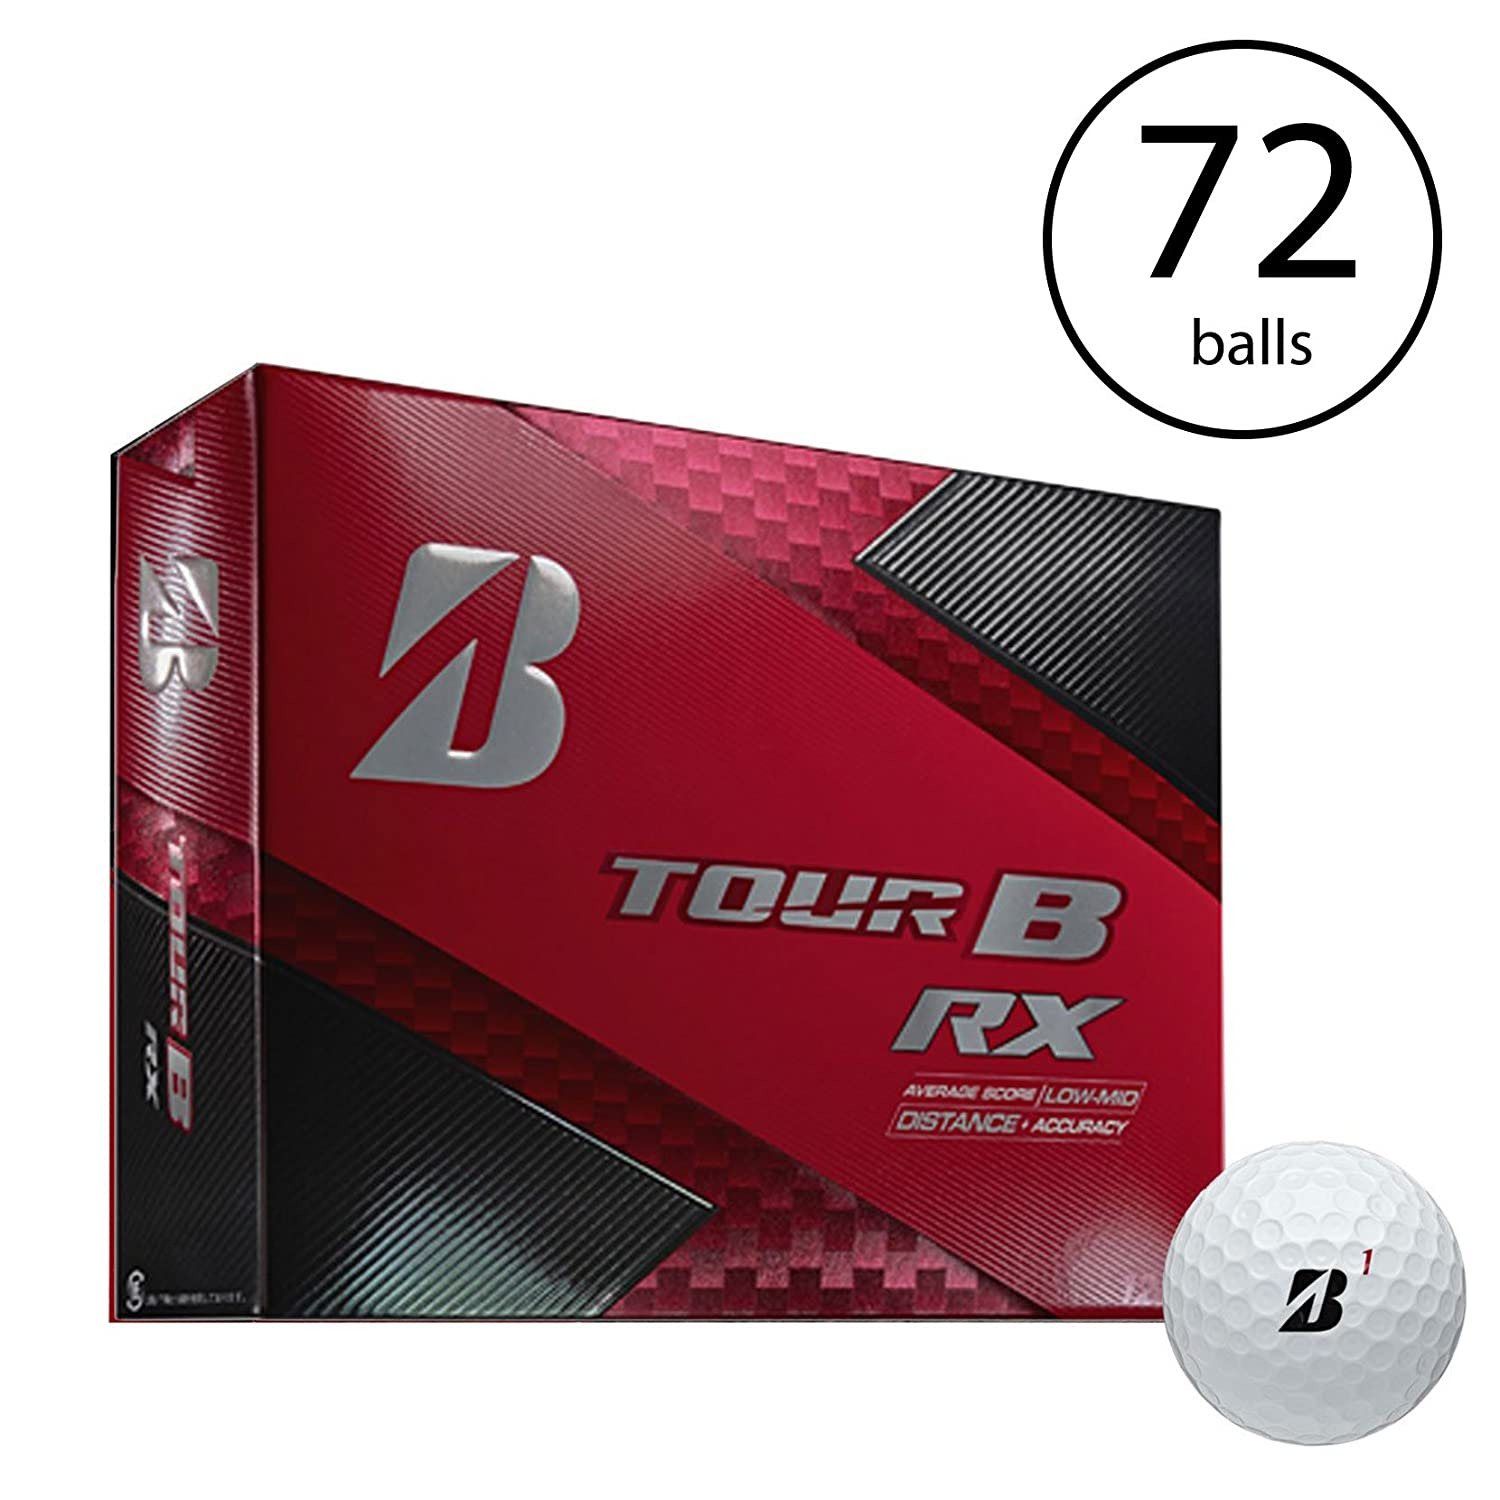 Bridgestone Tour B RX Feel and Distance Golf Balls Low Average Score (6 Dozen)